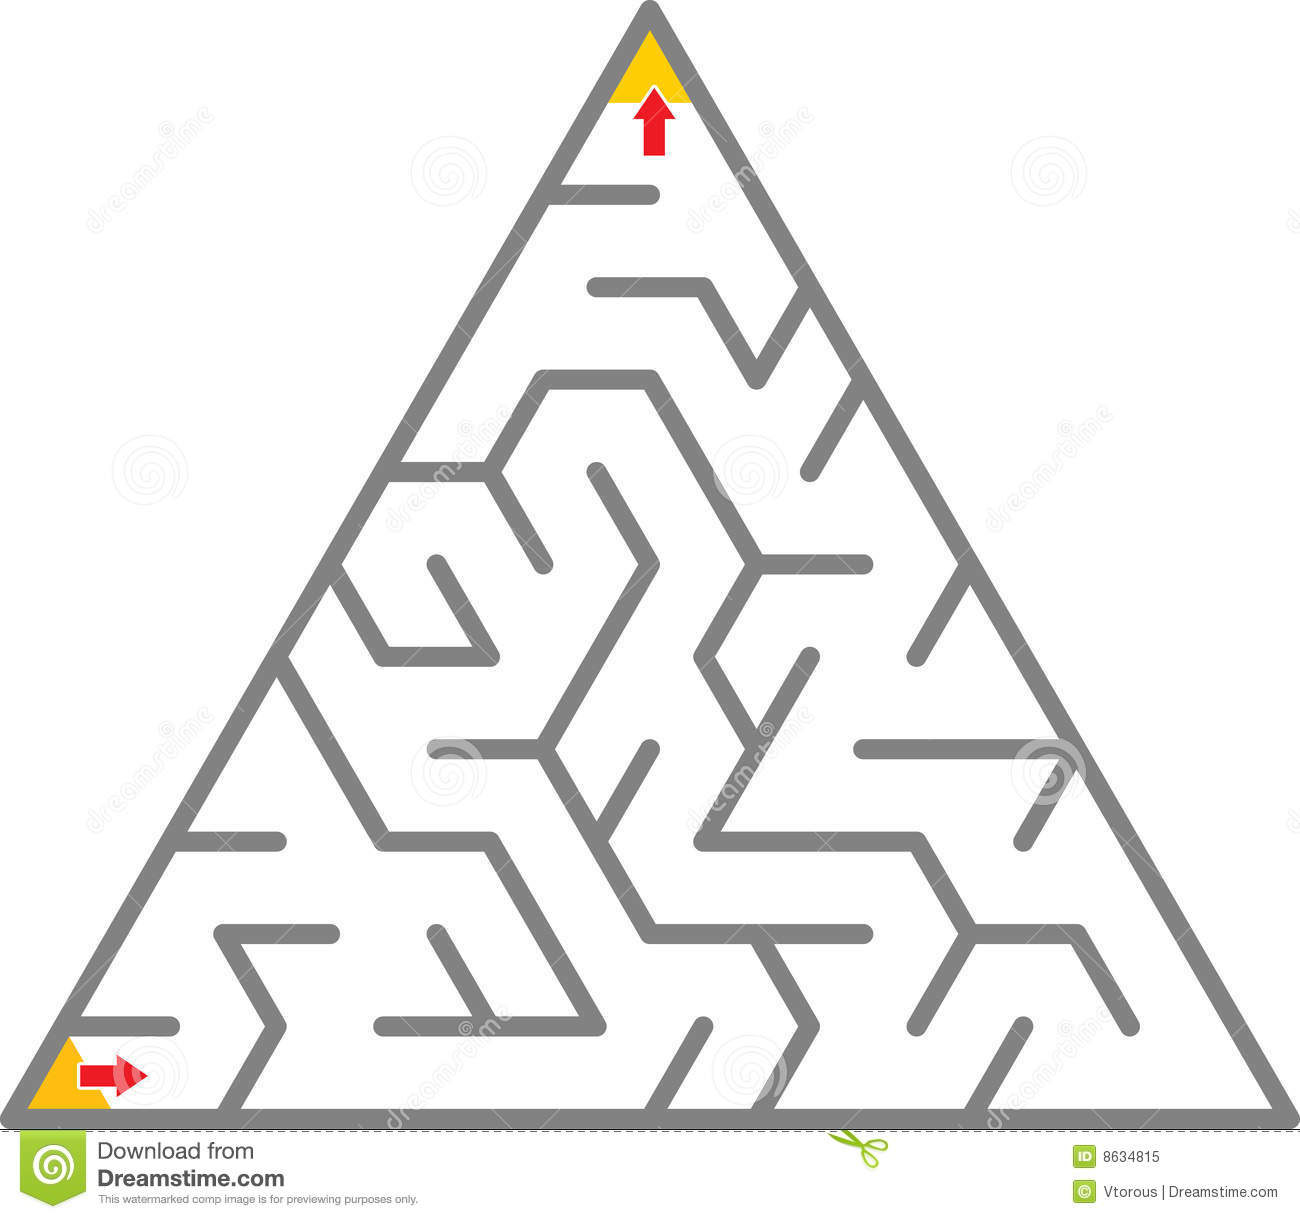 triangle maze royalty free stock photo image 8634815 firefighter clipart images Fireman Coloring Pages